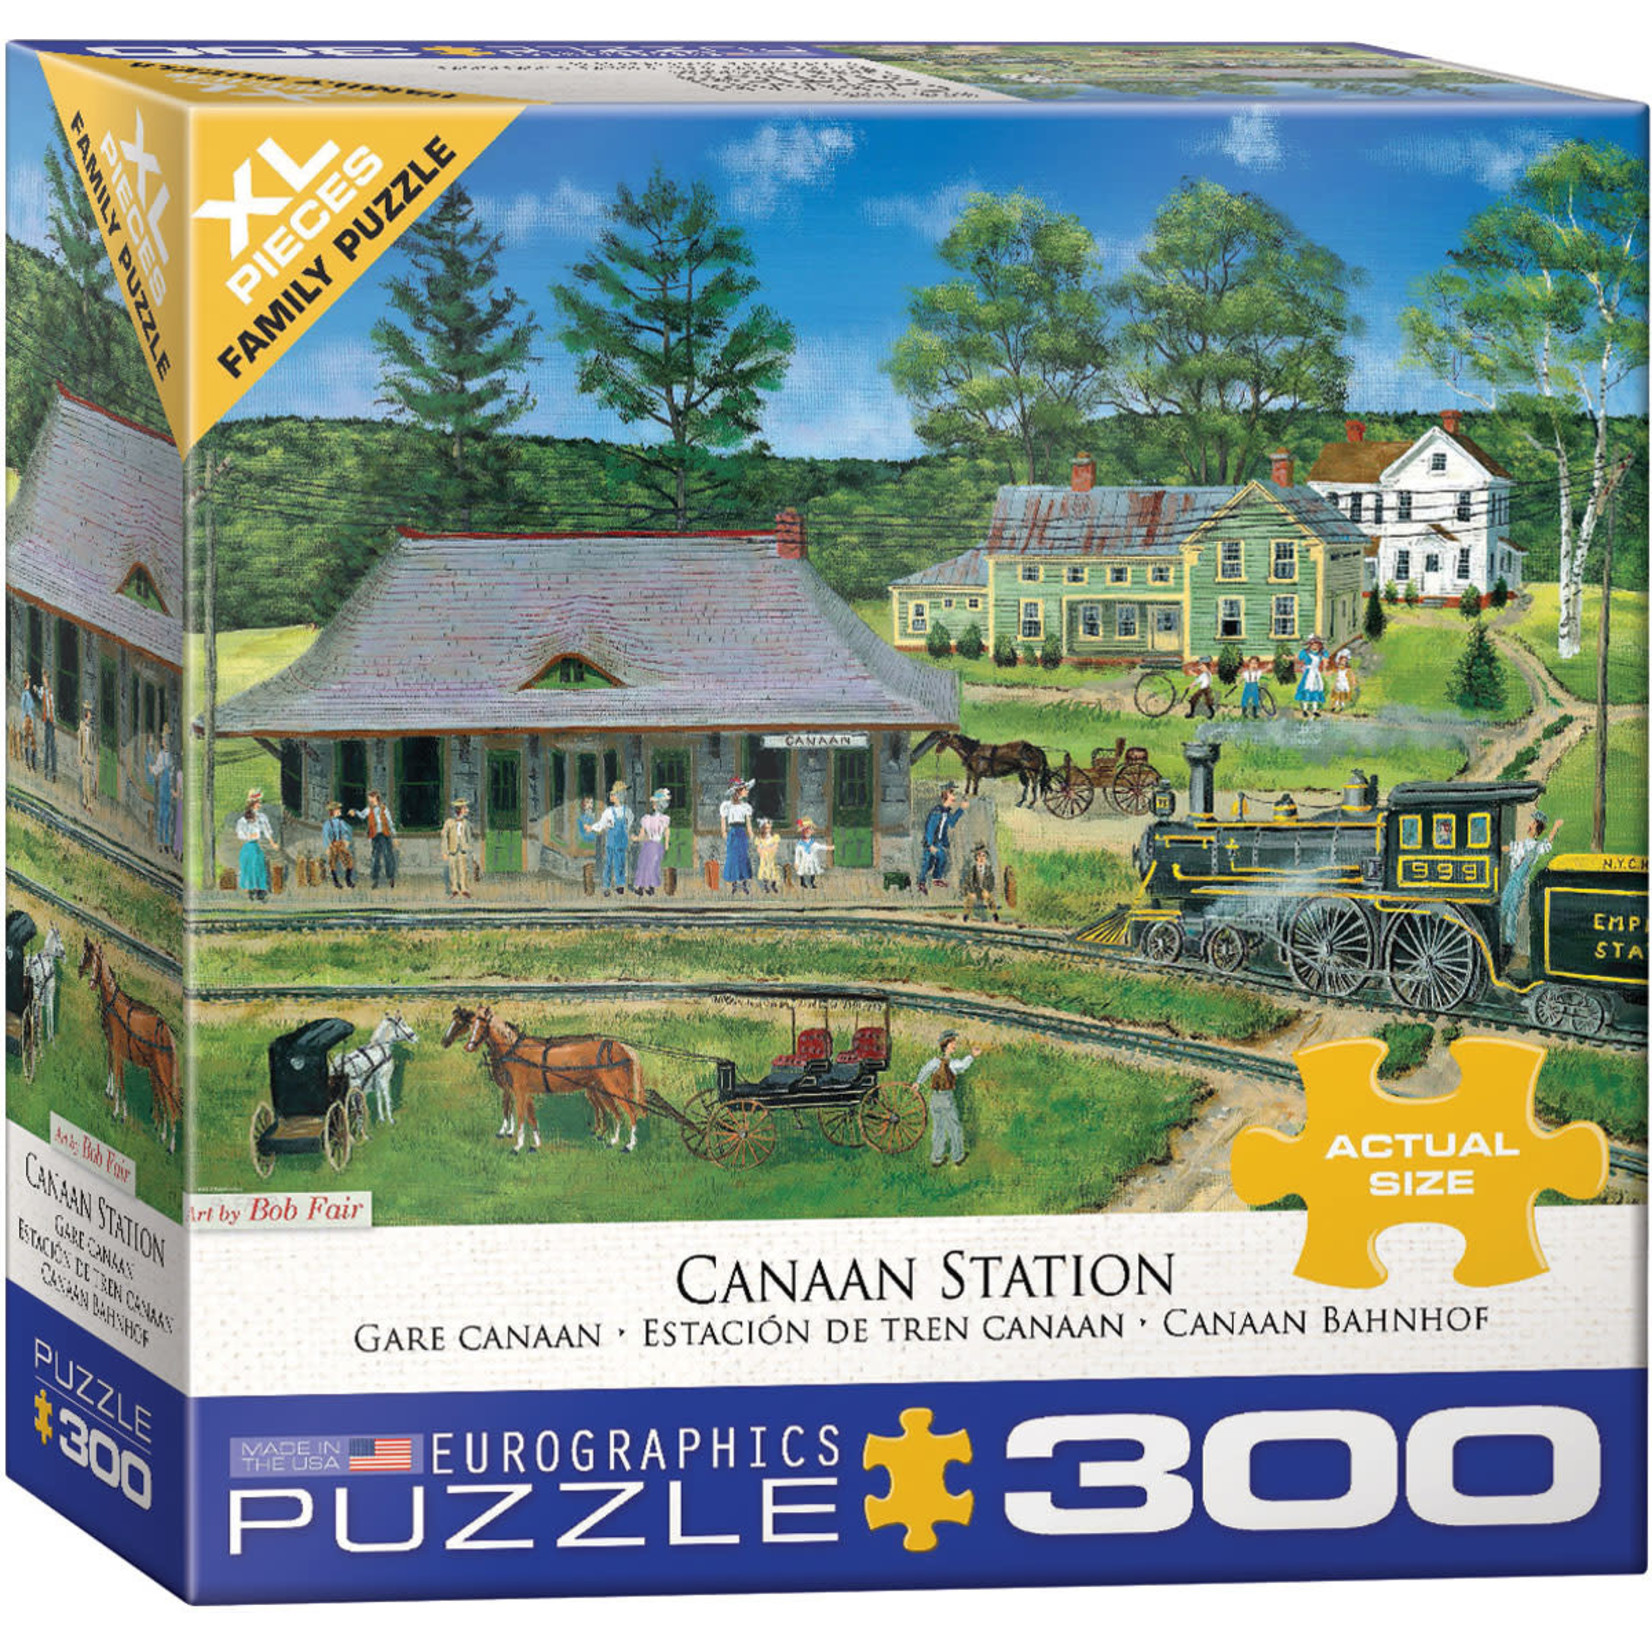 Eurographics Eurographics Puzzle: Canaan Station - 300pc